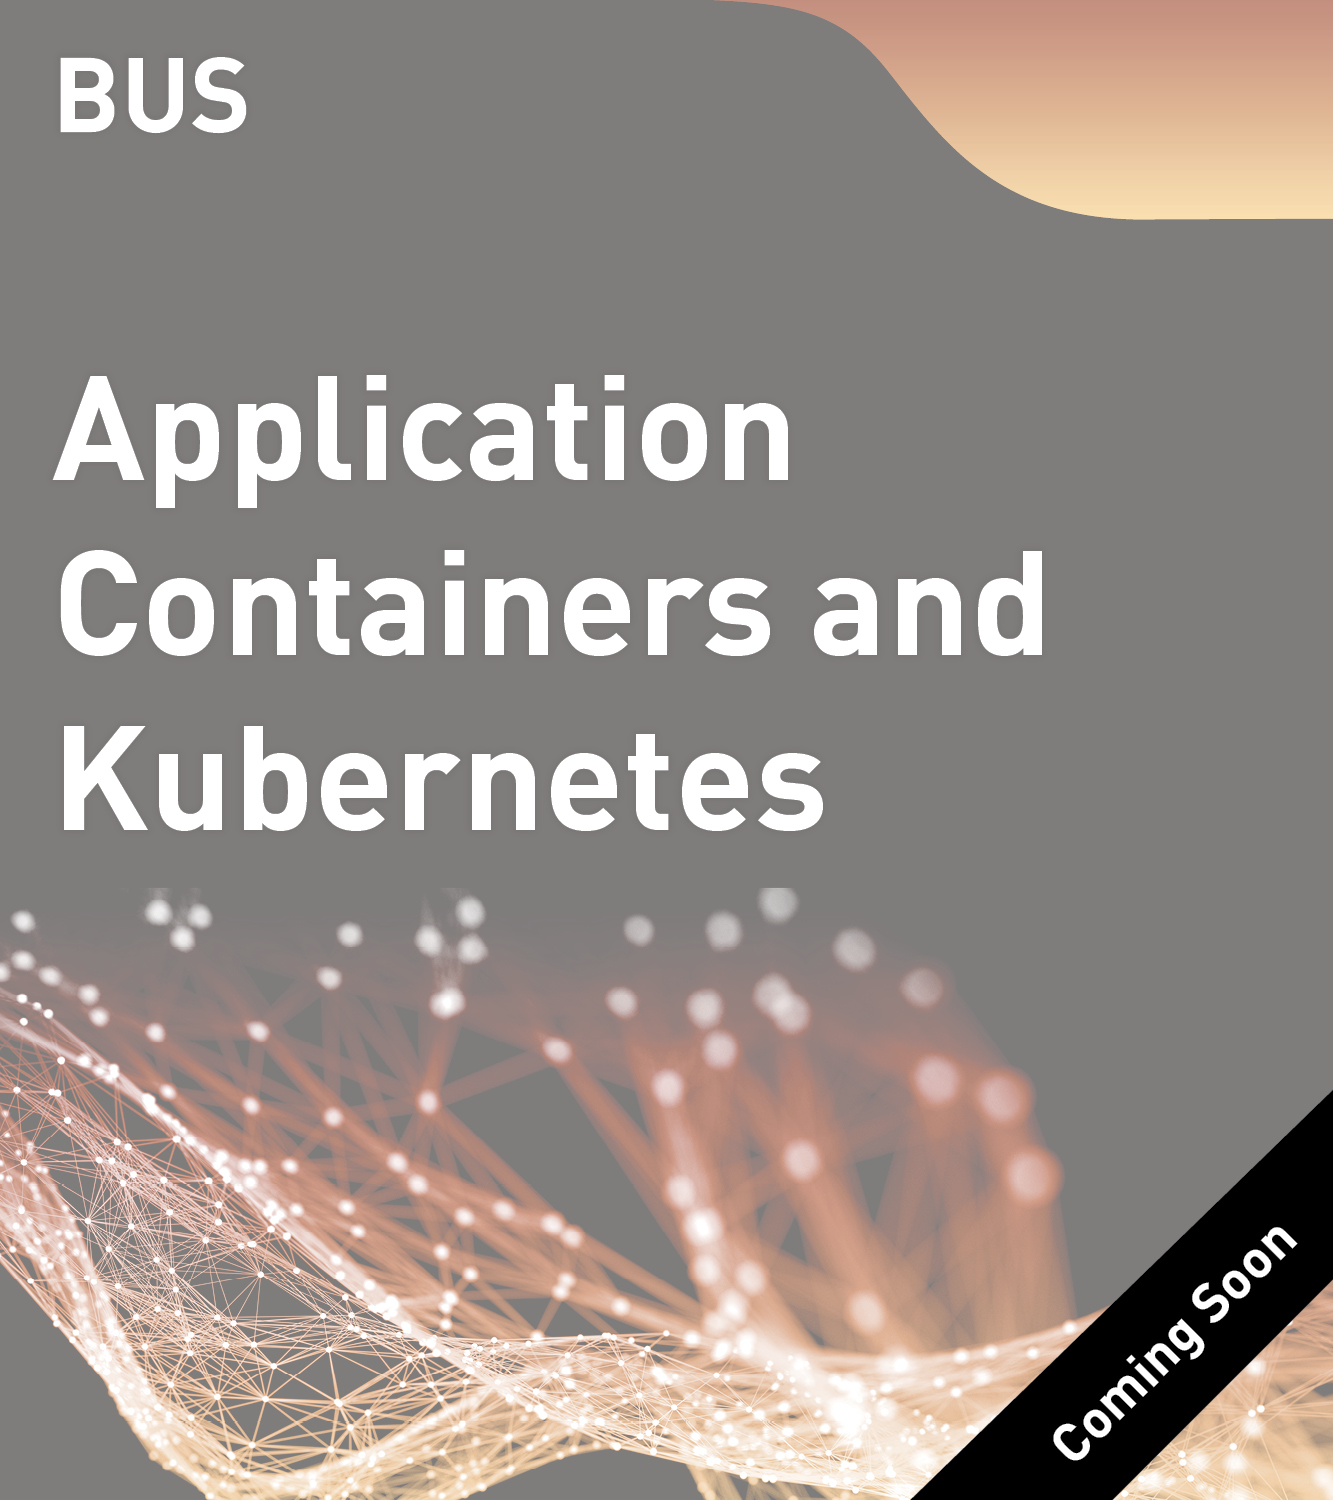 BUS - Application Containers and Kubernetes